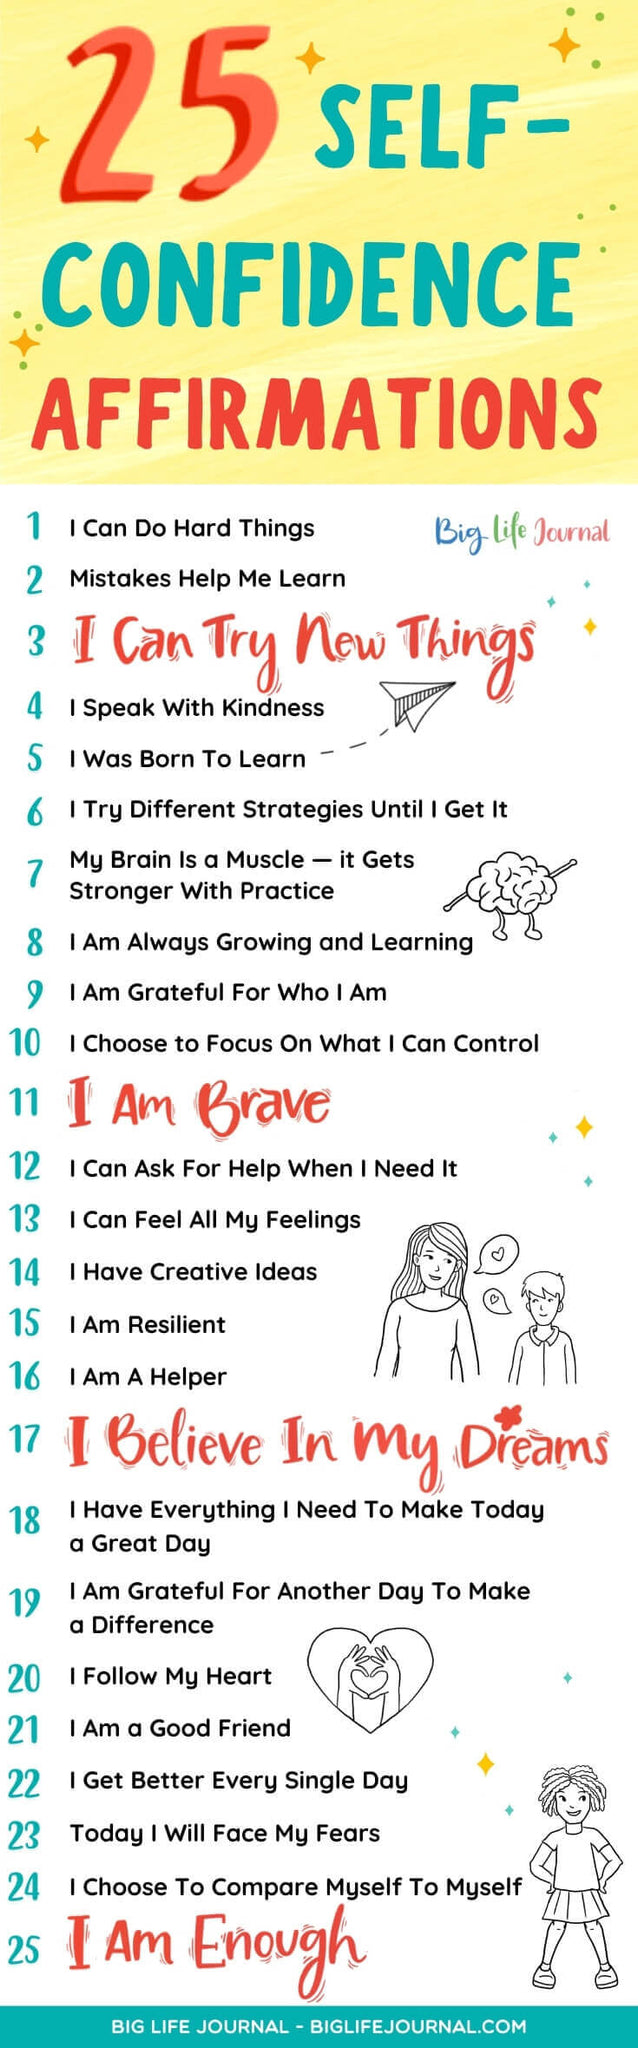 25 Self-Confidence Affirmations